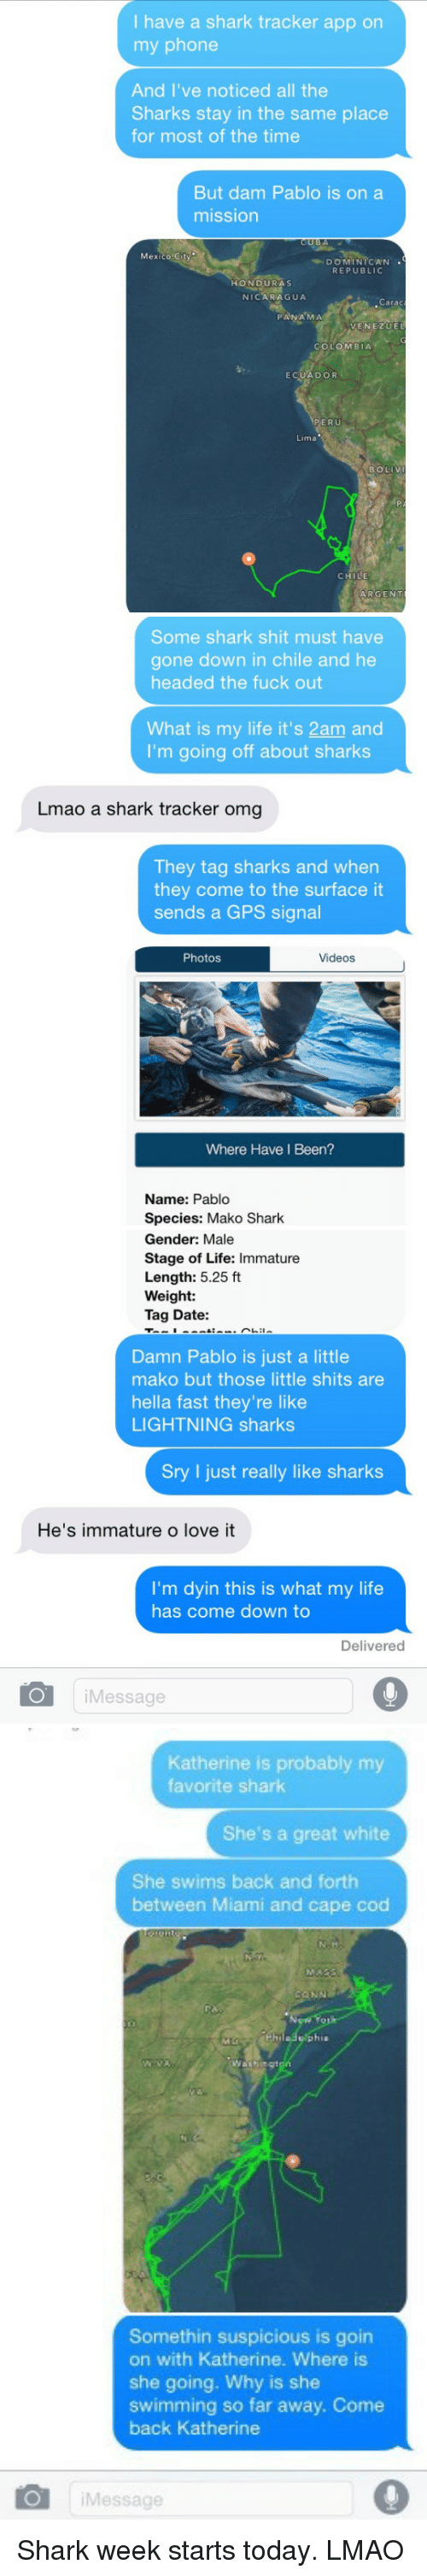 Where Is She: have a shark tracker app on  my phone  And I've noticed all the  Sharks stay in the same place  for most of the time  But dam Pablo is on a  mission  Mexico City  DO MINI CAN  REPUBLIC  HONDURAS  NICARAGUA  Carac  PANAMA  VENEZUEL  COLOMBIA  ECUADOR  PERU  Lima  BOLIV  CHILE  ARGENT   Some shark shit must have  gone down in chile and he  headed the fuck out  What is my life it's 2am and  I'm going off about sharks  Lmao a shark tracker omg  They tag sharks and when  they come to the surface it  sends a GPS signal  Photos  Videos  Where Have I Been?  Name: Pablo  Species: Mako Shark   Gender: Male  Stage of Life: Immature  Length: 5.25 ft  Weight:  Tag Date:  Damn Pablo is just a little  mako but those little shits are  hella fast they're like  LIGHTNING sharks  Sry I just really like sharks  He's immature o love it  I'm dyin this is what my life  has come down to  Delivered  O Message   Katherine is probably my  favorite shark  She's a great white  She swims back and forth  between Miami and cape cod  Somethin suspicious is goin  on with Katherine. Where is  she going. Why is she  swimming so far away. Come  back Katherine  i Message Shark week starts today. LMAO